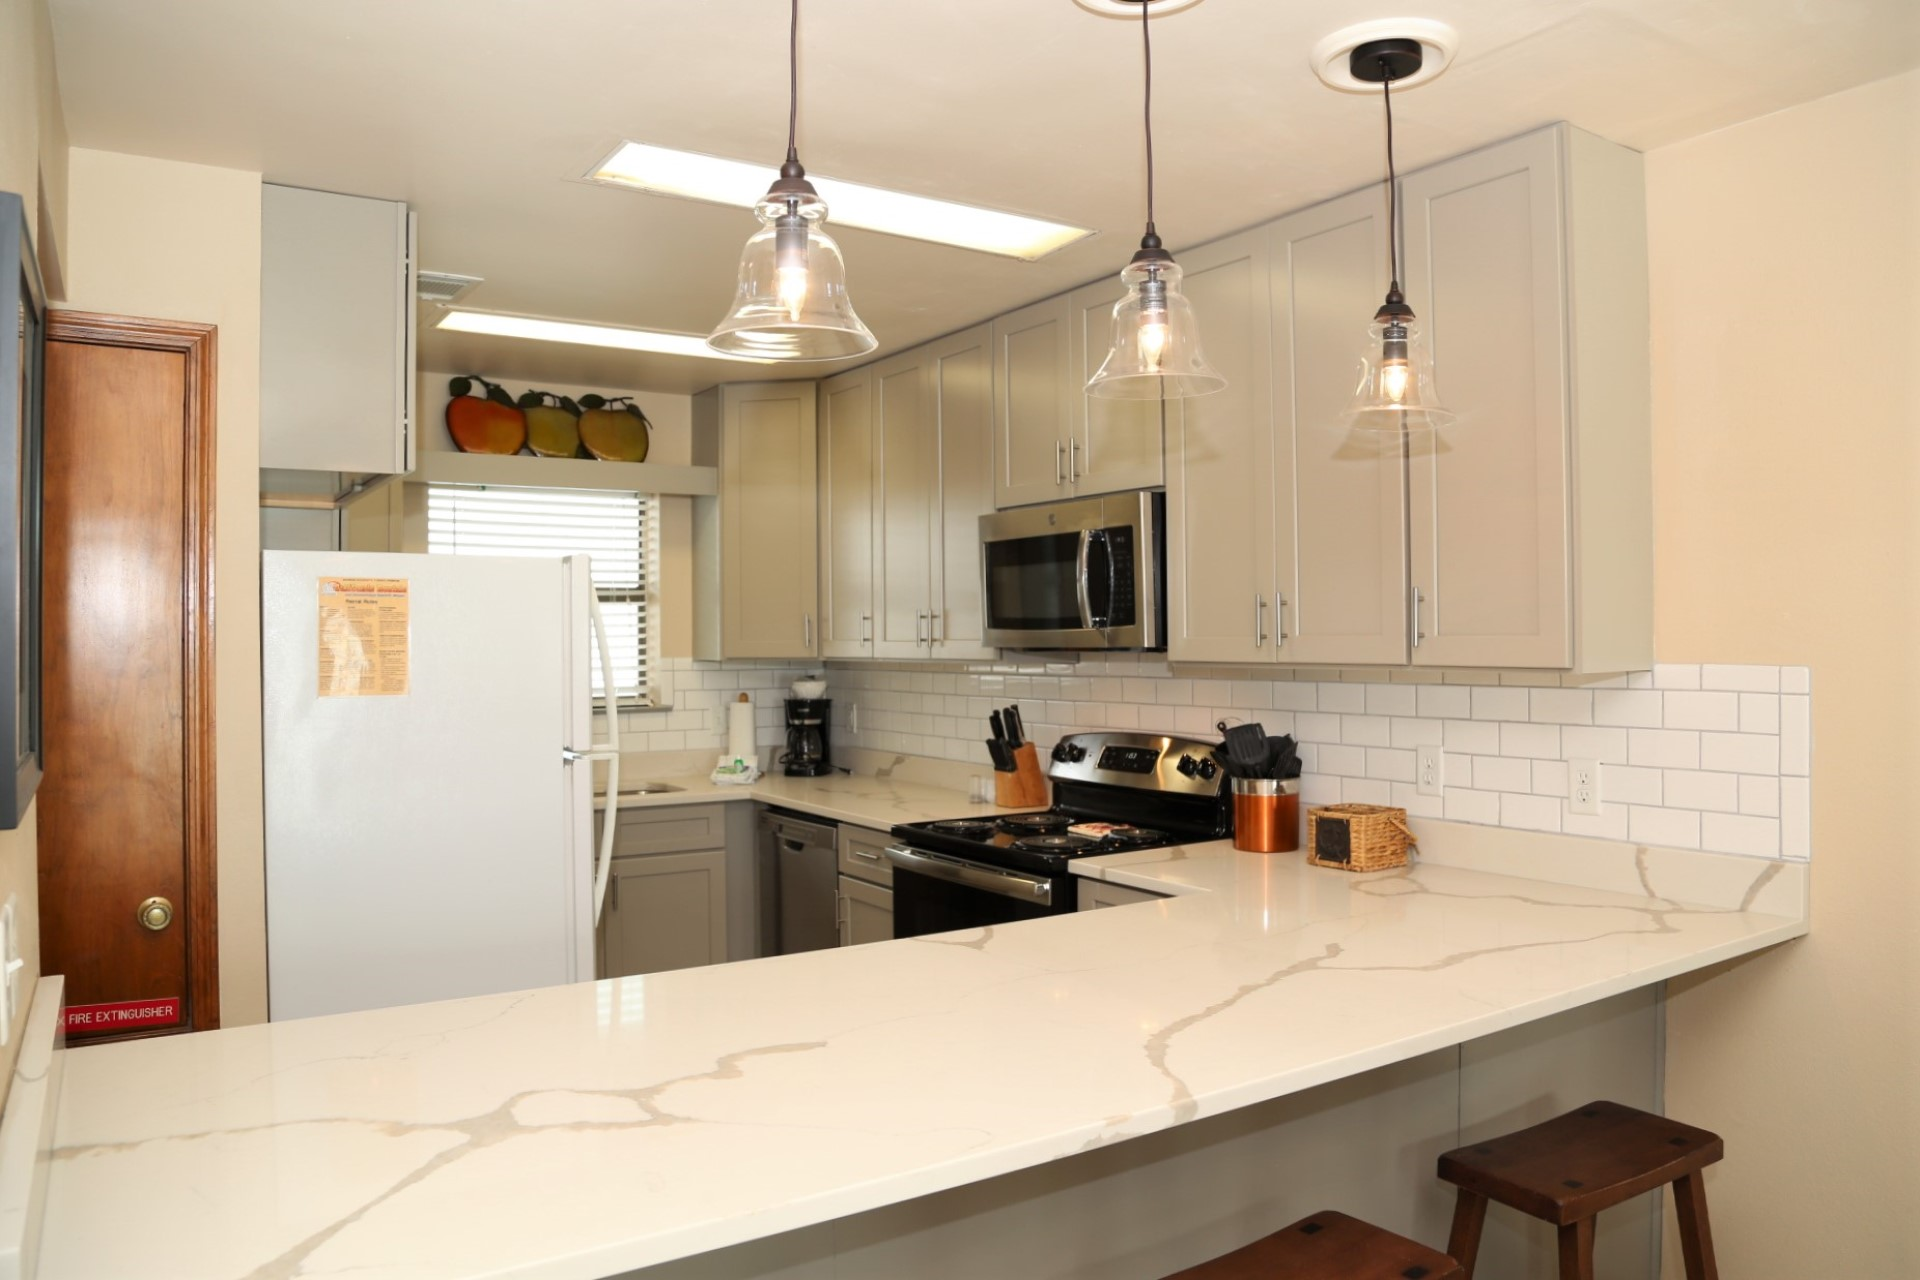 The upgraded counters provide ample space for prepping meals